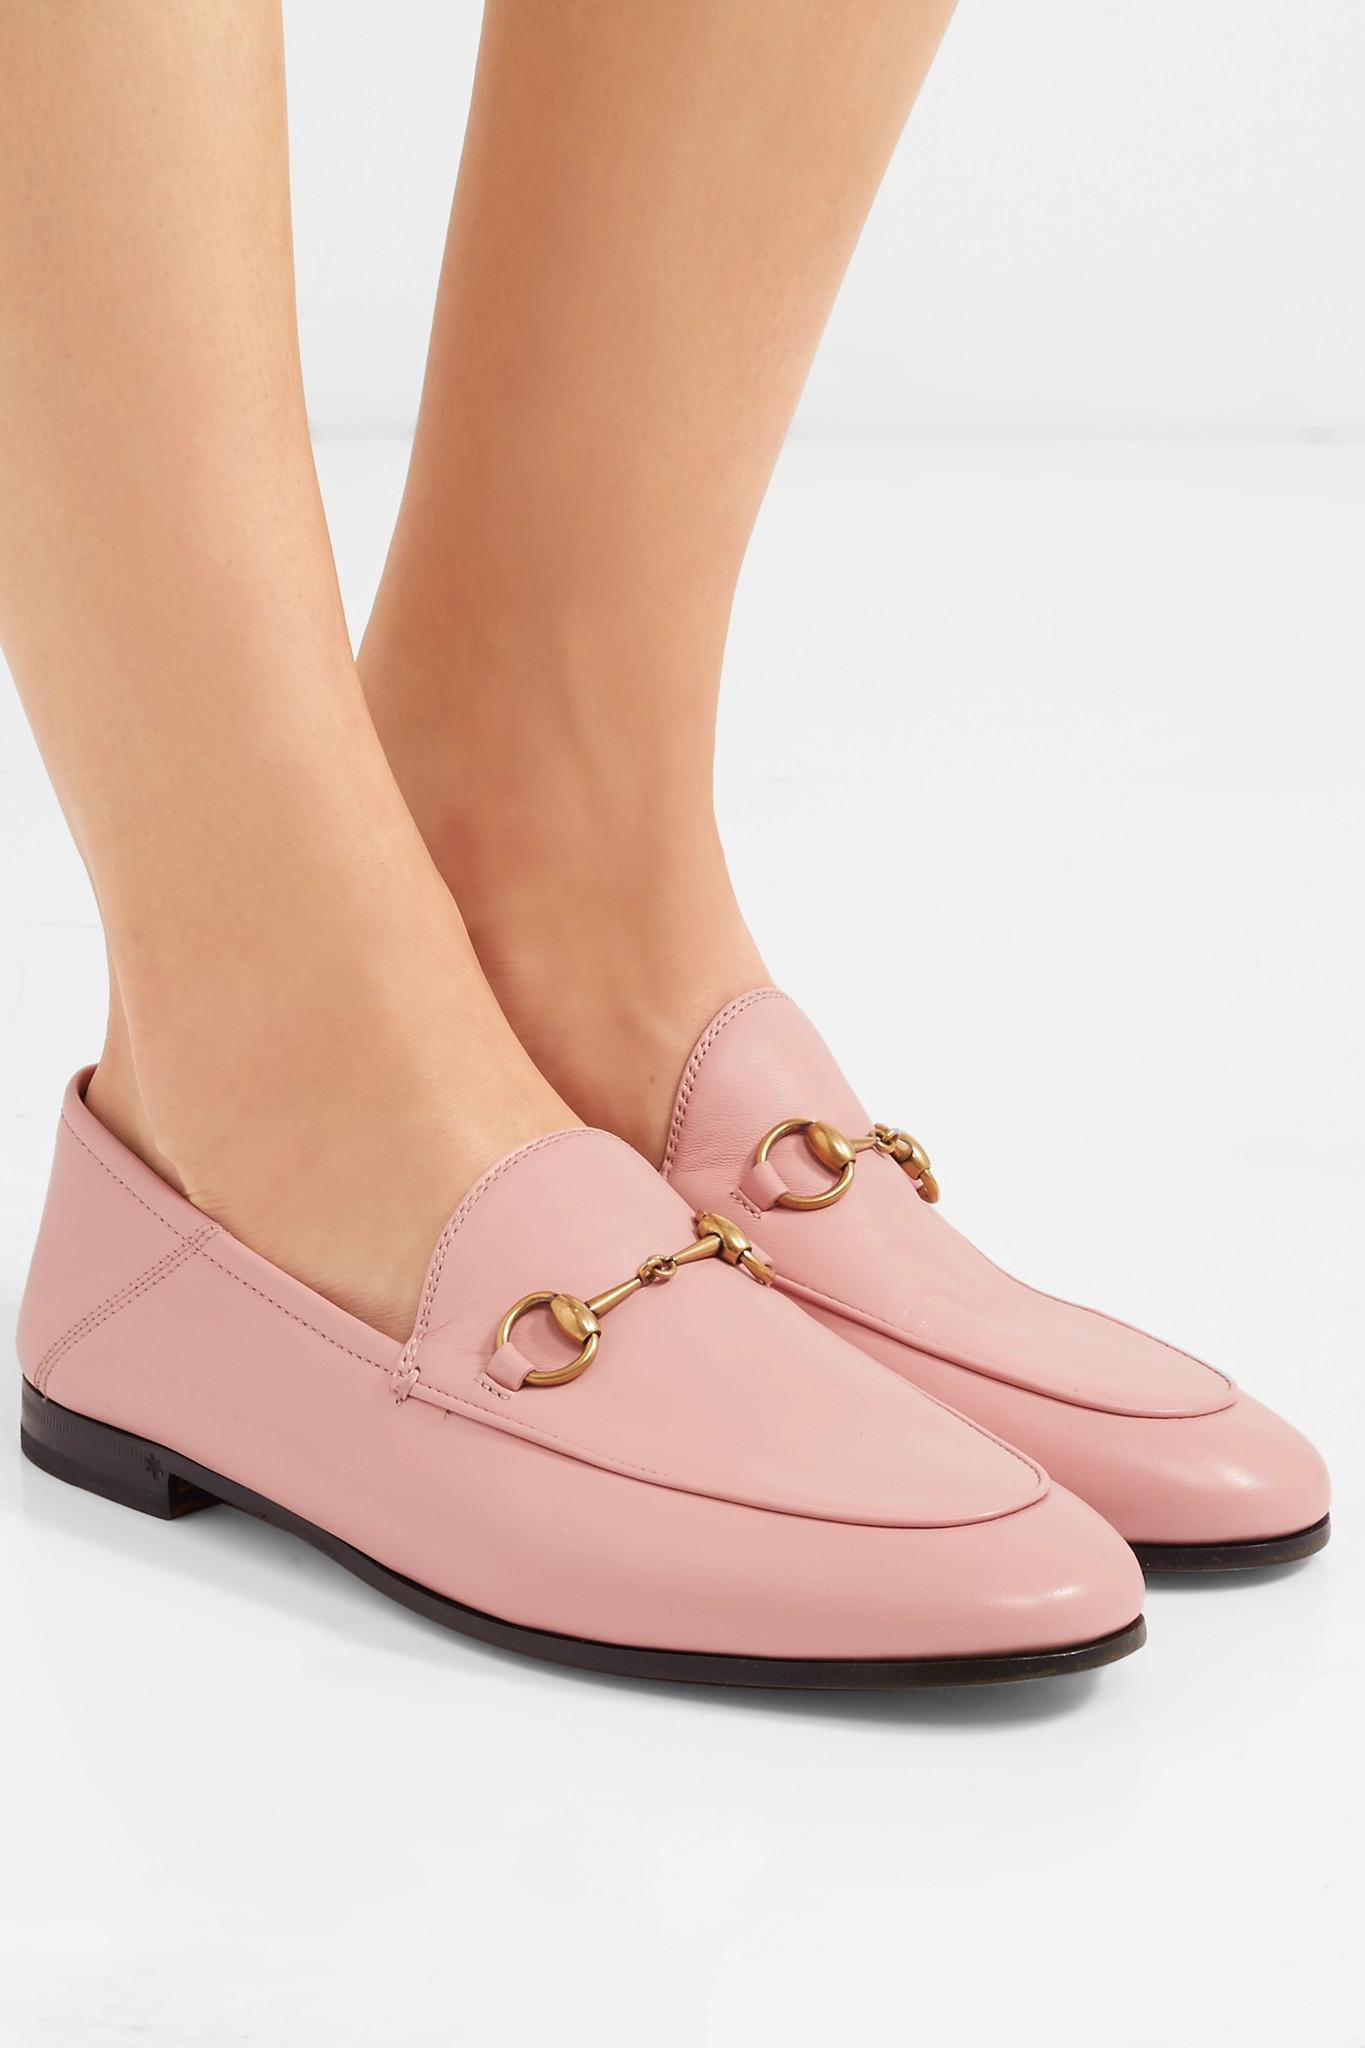 2a0f31e29c9 Gucci - Pink Brixton Horsebit-detailed Leather Collapsible-heel Loafers -  Lyst. View fullscreen